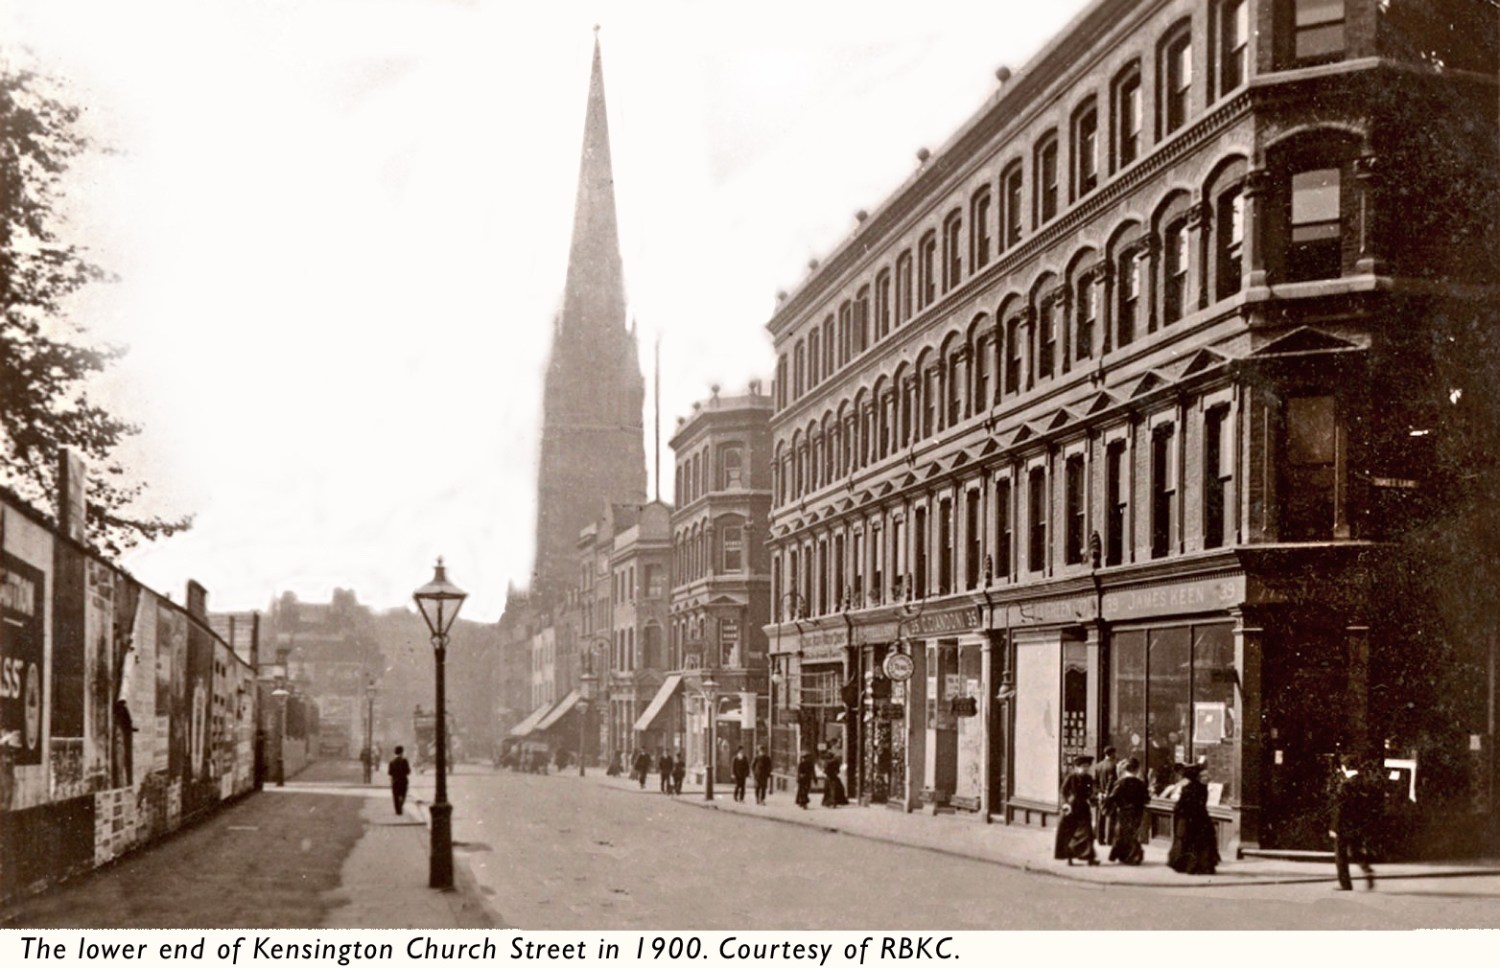 Kensington-Church-Street-Lower-1900-caption